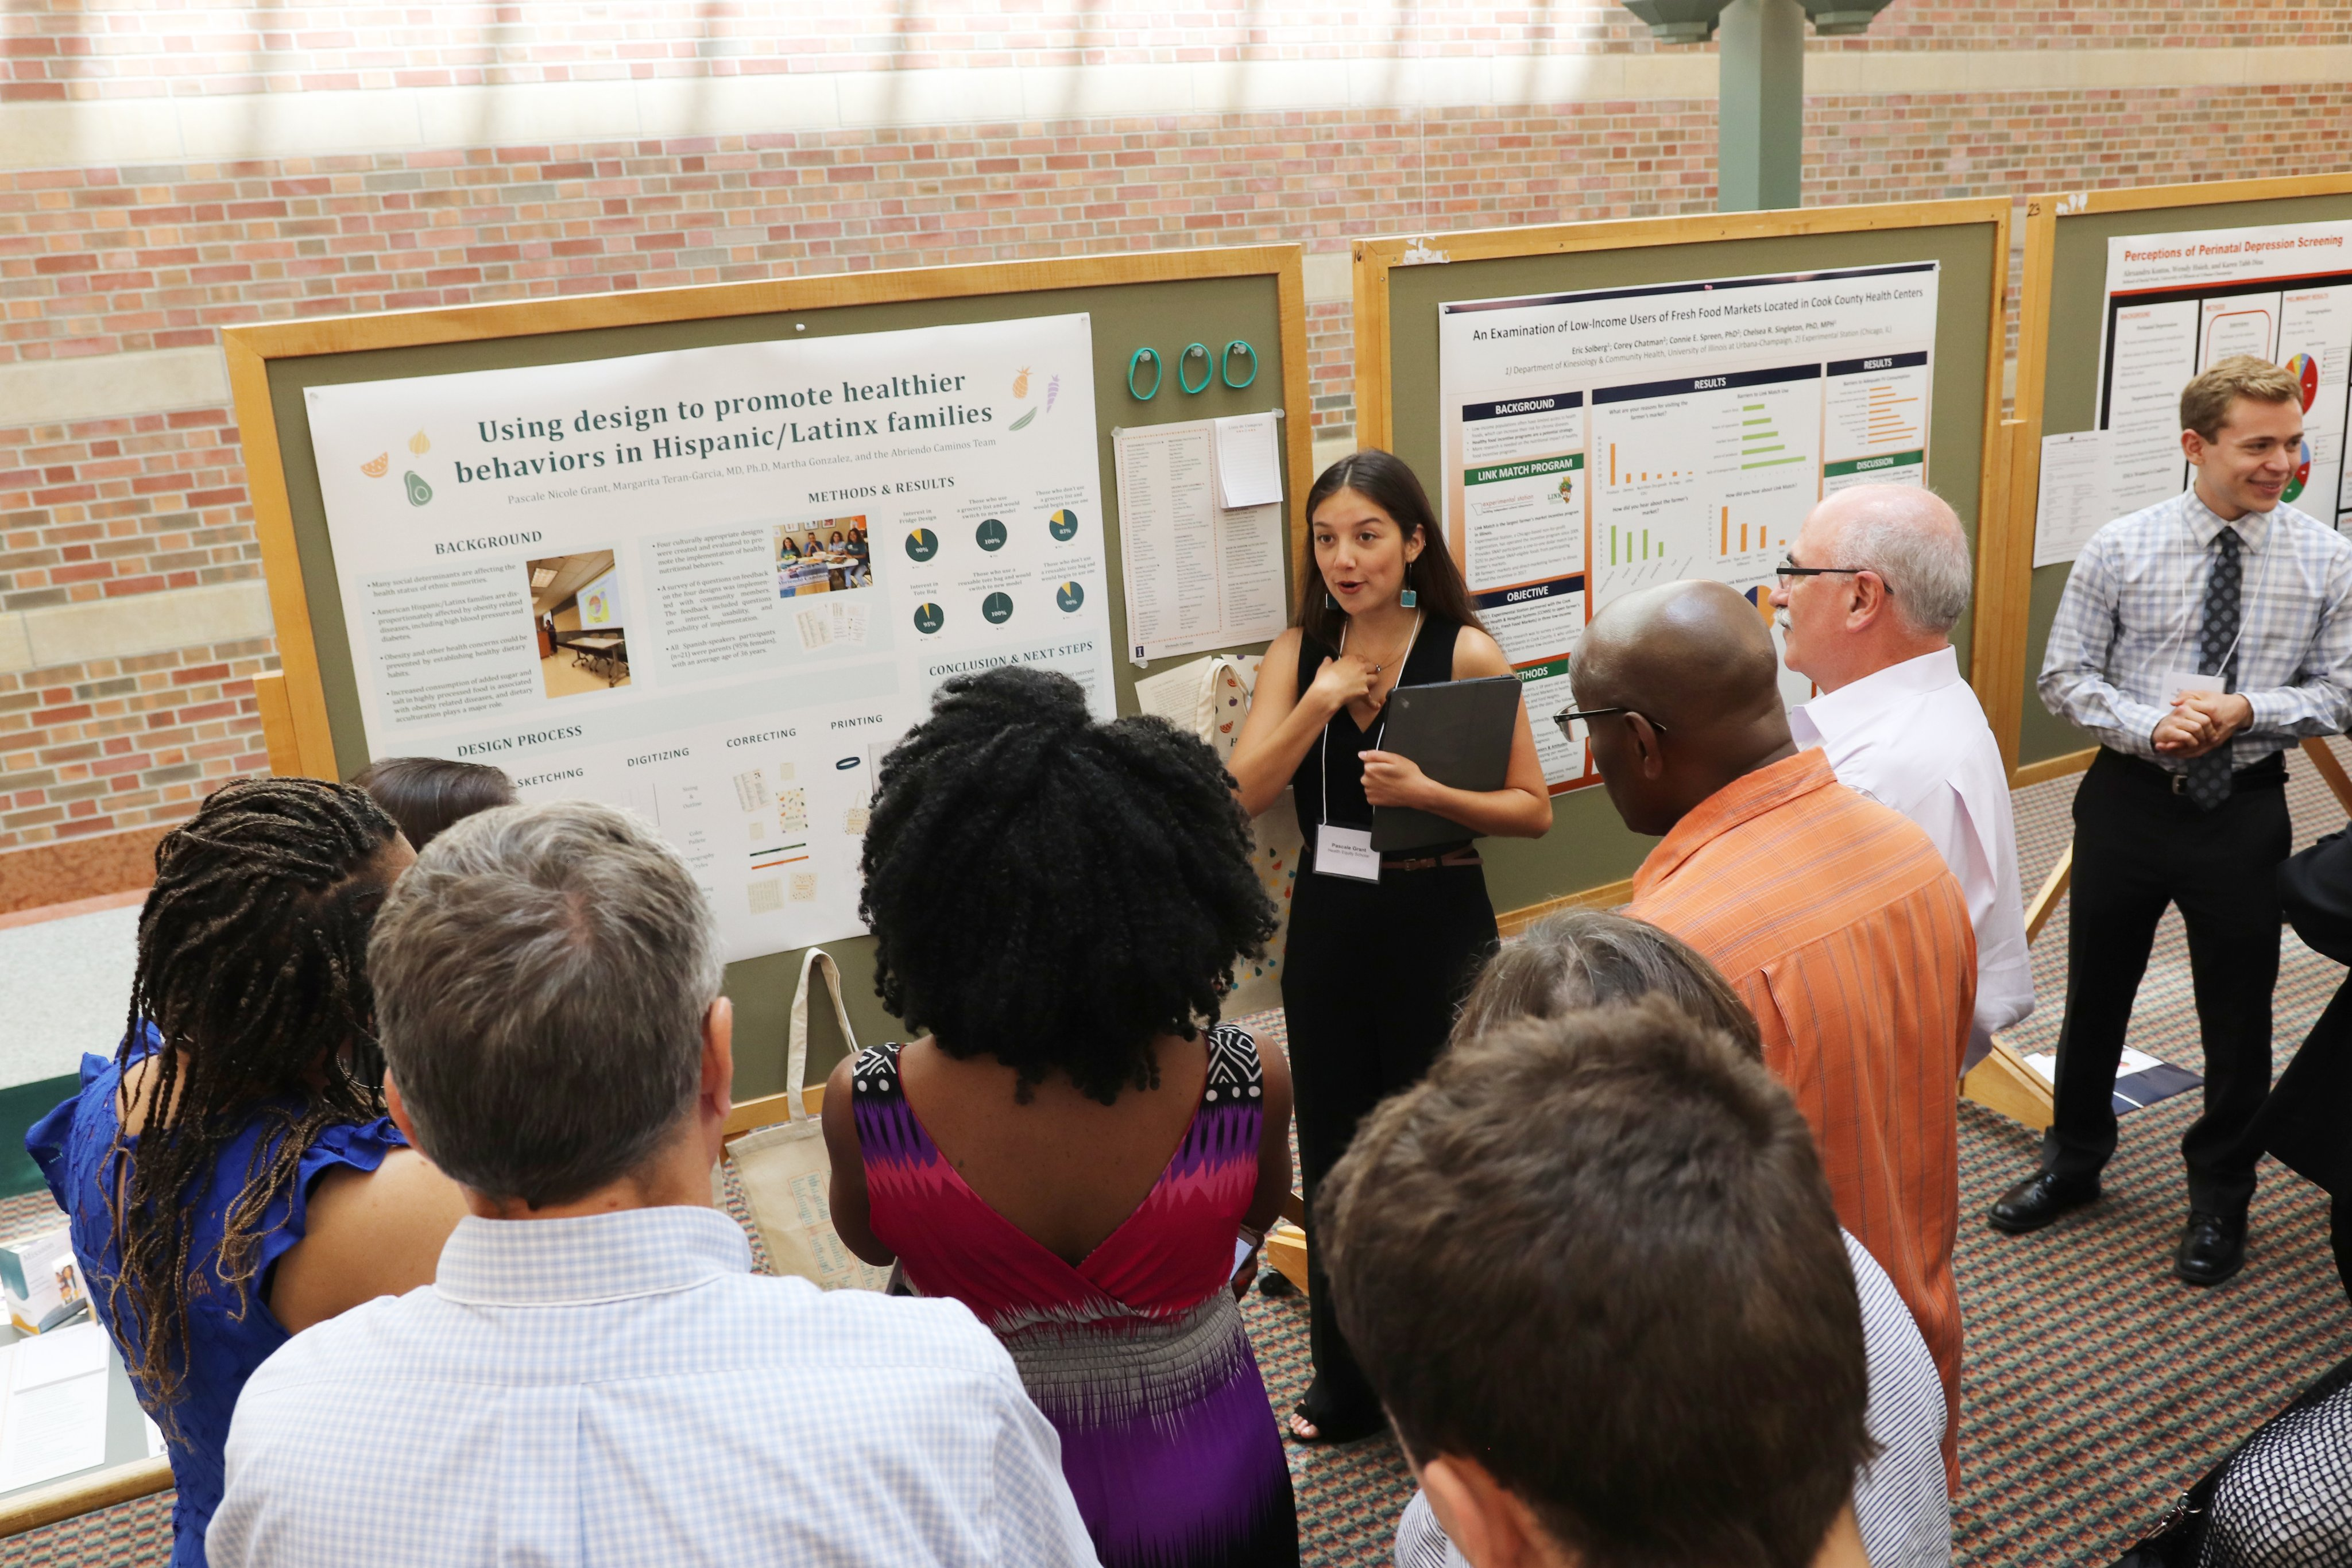 Pascale Grant presenting her poster